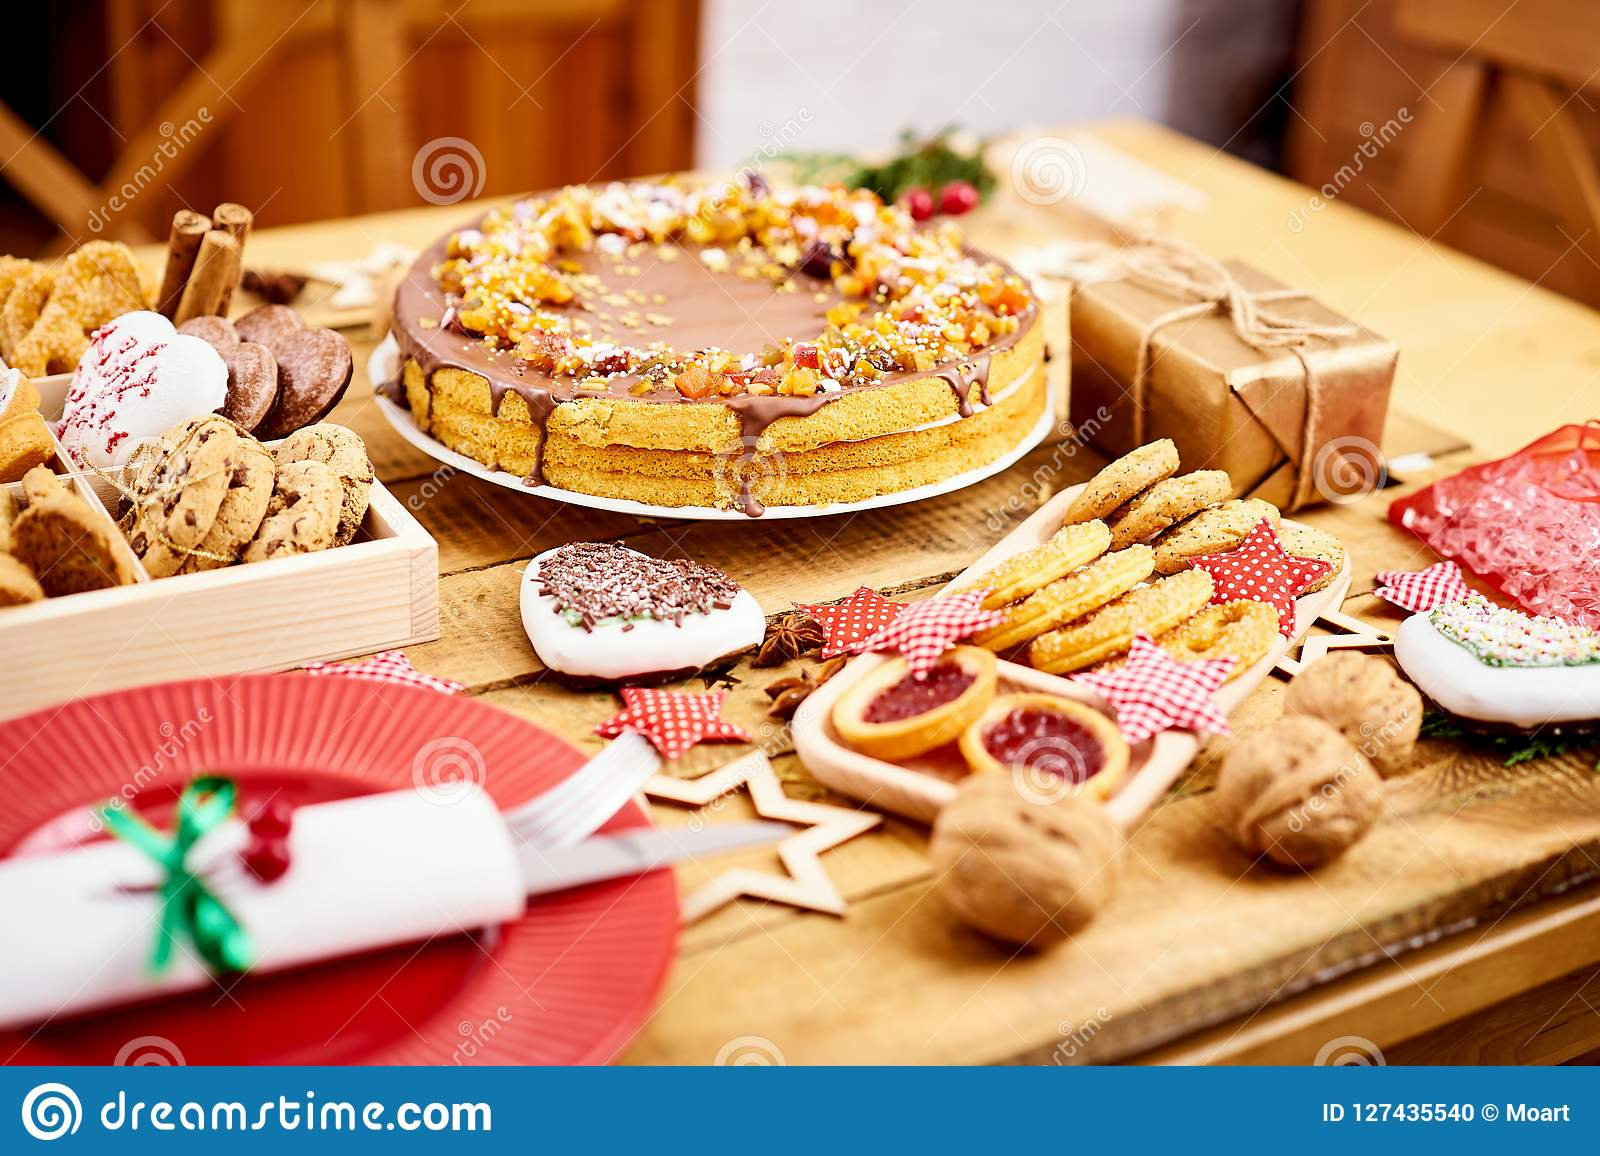 Wooden Table With Delicious Christmas Cake Decorations And Different